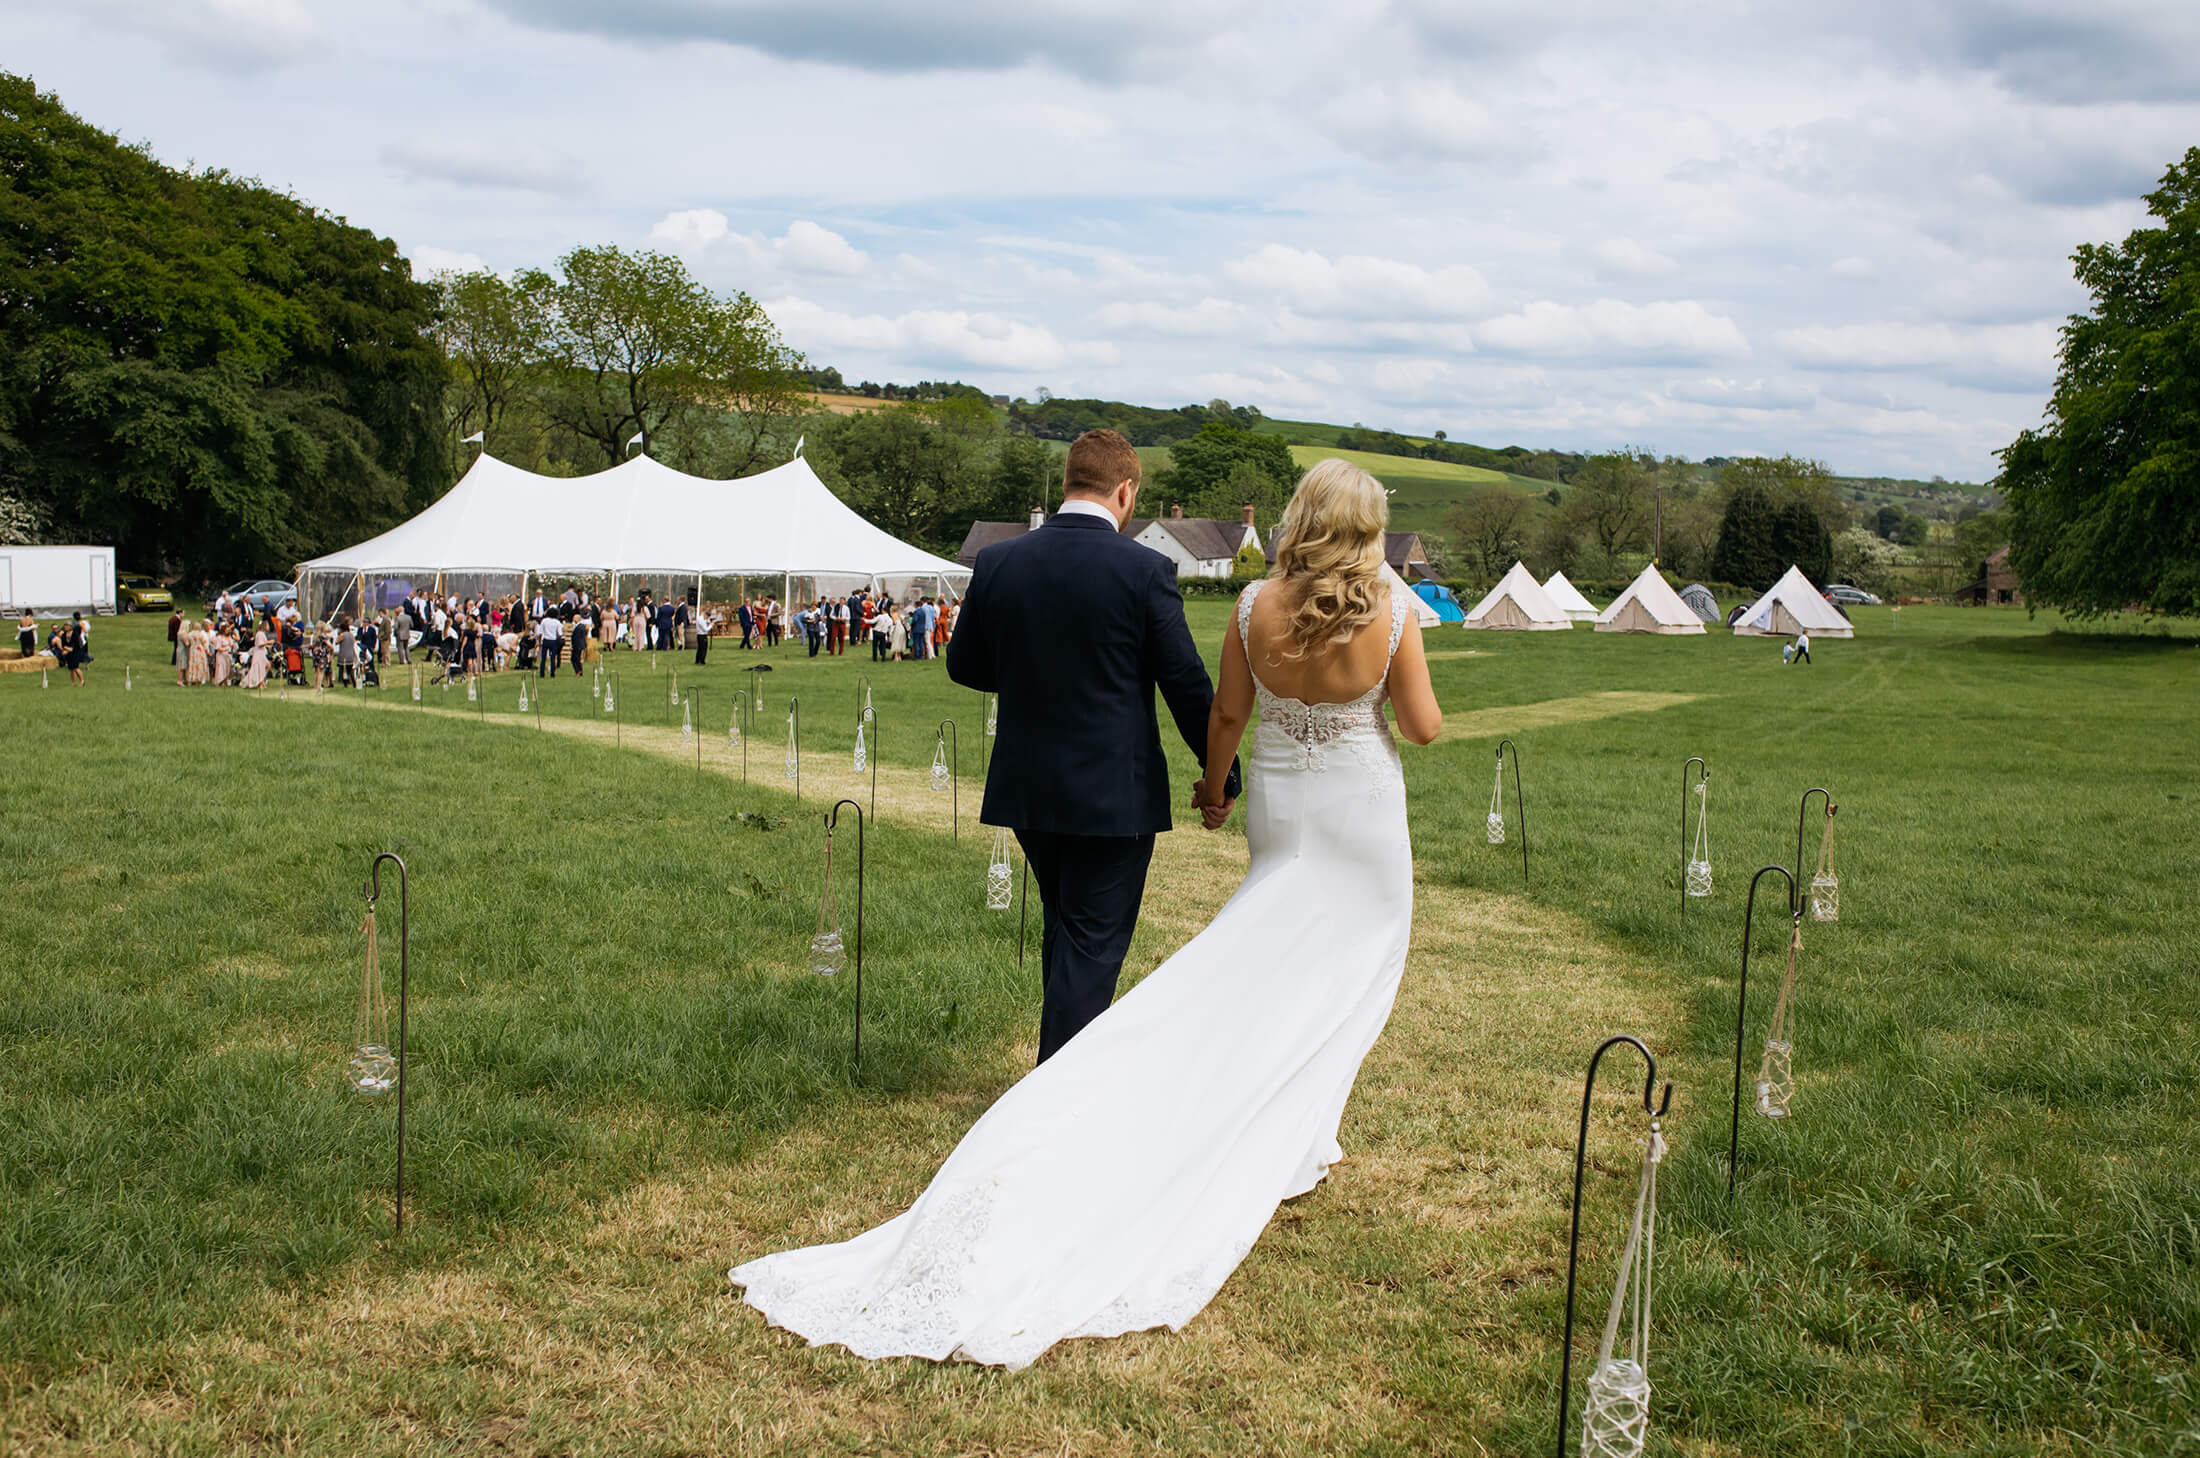 The bride and groom make their way to the marquee for their wedding celebrations.